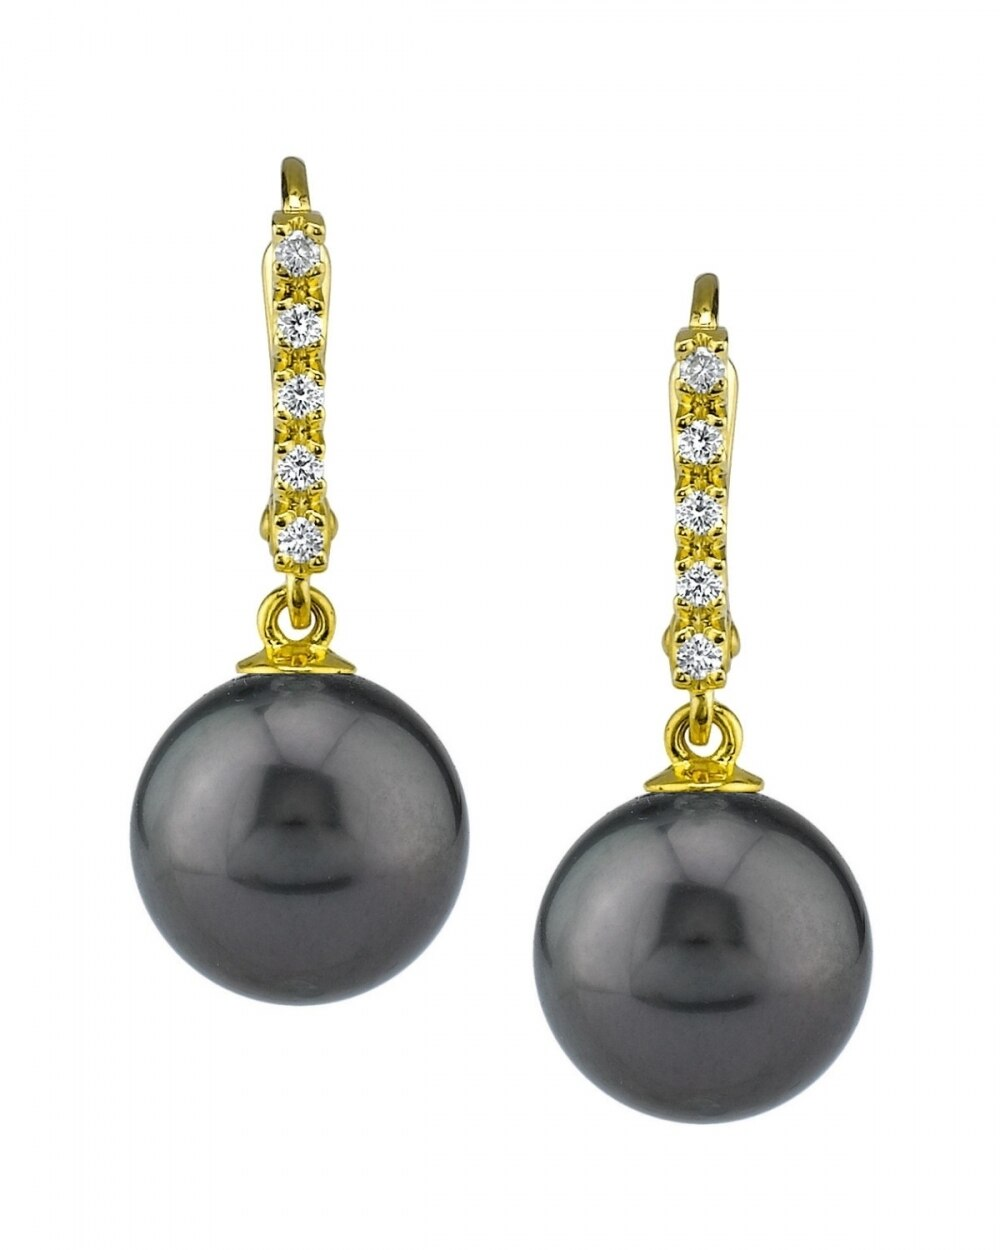 Exquisite earrings feature two 10.0-11.0mm  Tahitian South Sea pearls, selected for their luminous luster